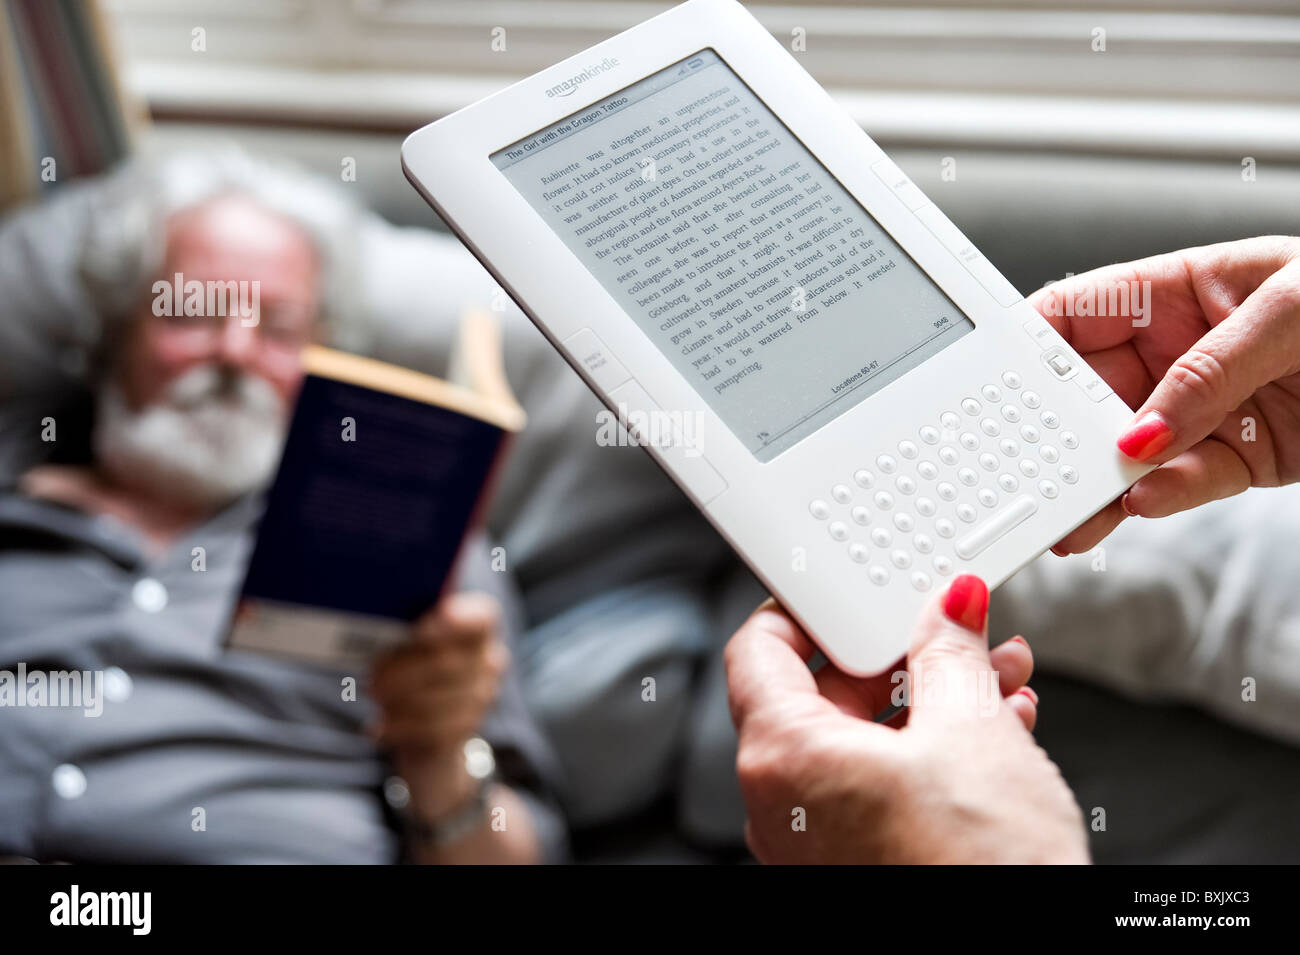 Reading book on Amazon Kindle - Stock Image